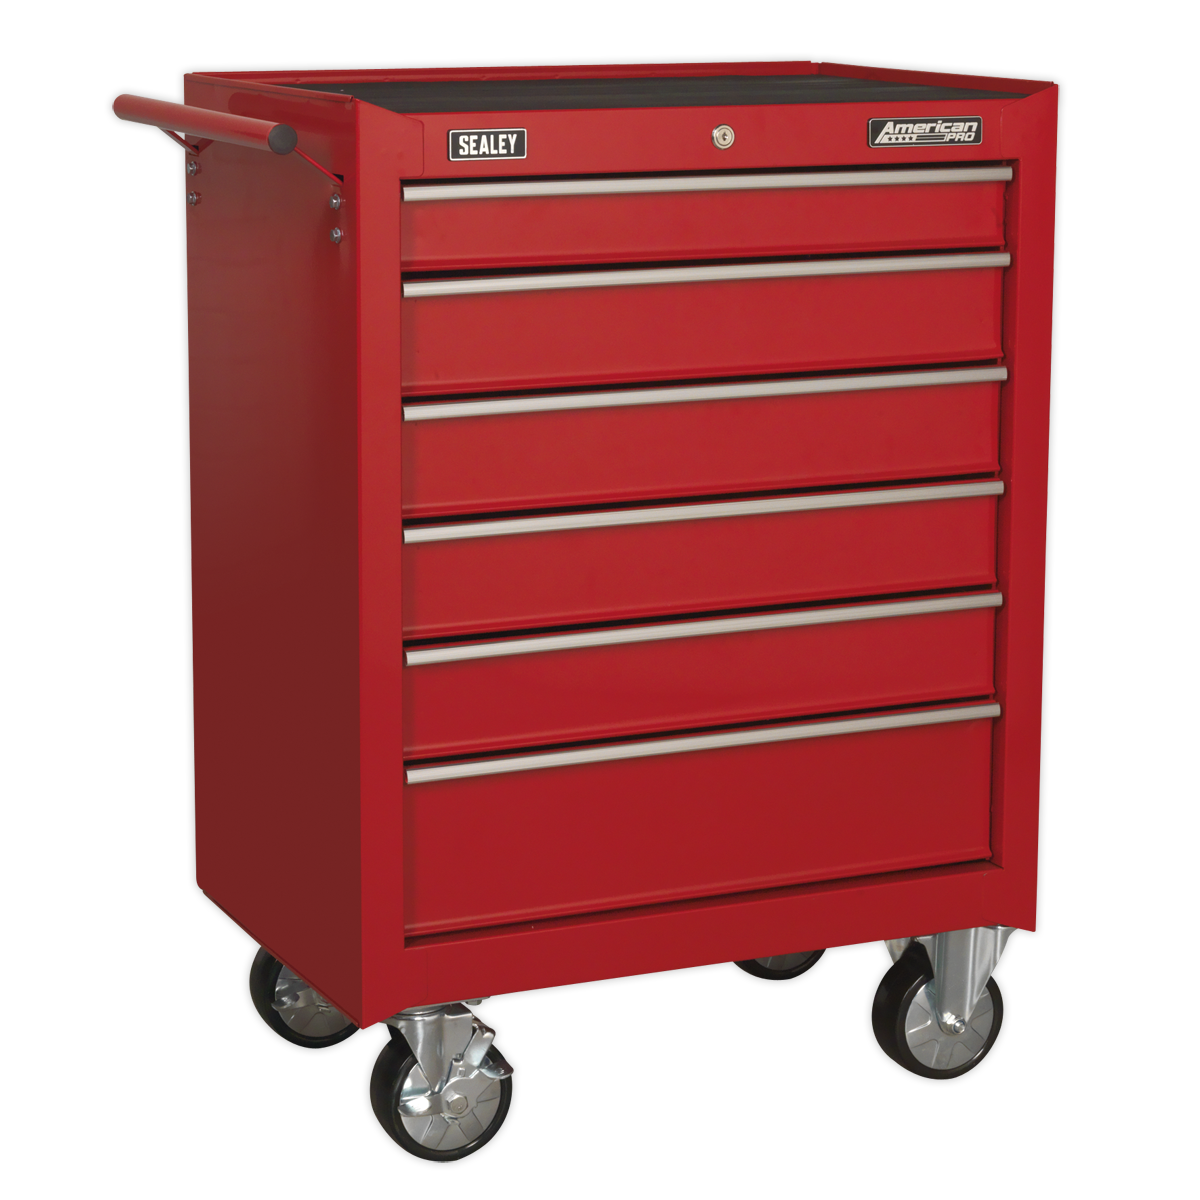 Sealey Rollcab 6 Drawer with Ball-Bearing Slides - Red AP226 | Features smooth 45mm ball-bearing drawer slides and a cylinder lock with locking bar to secure the drawers in place for additional security. | toolforce.ie